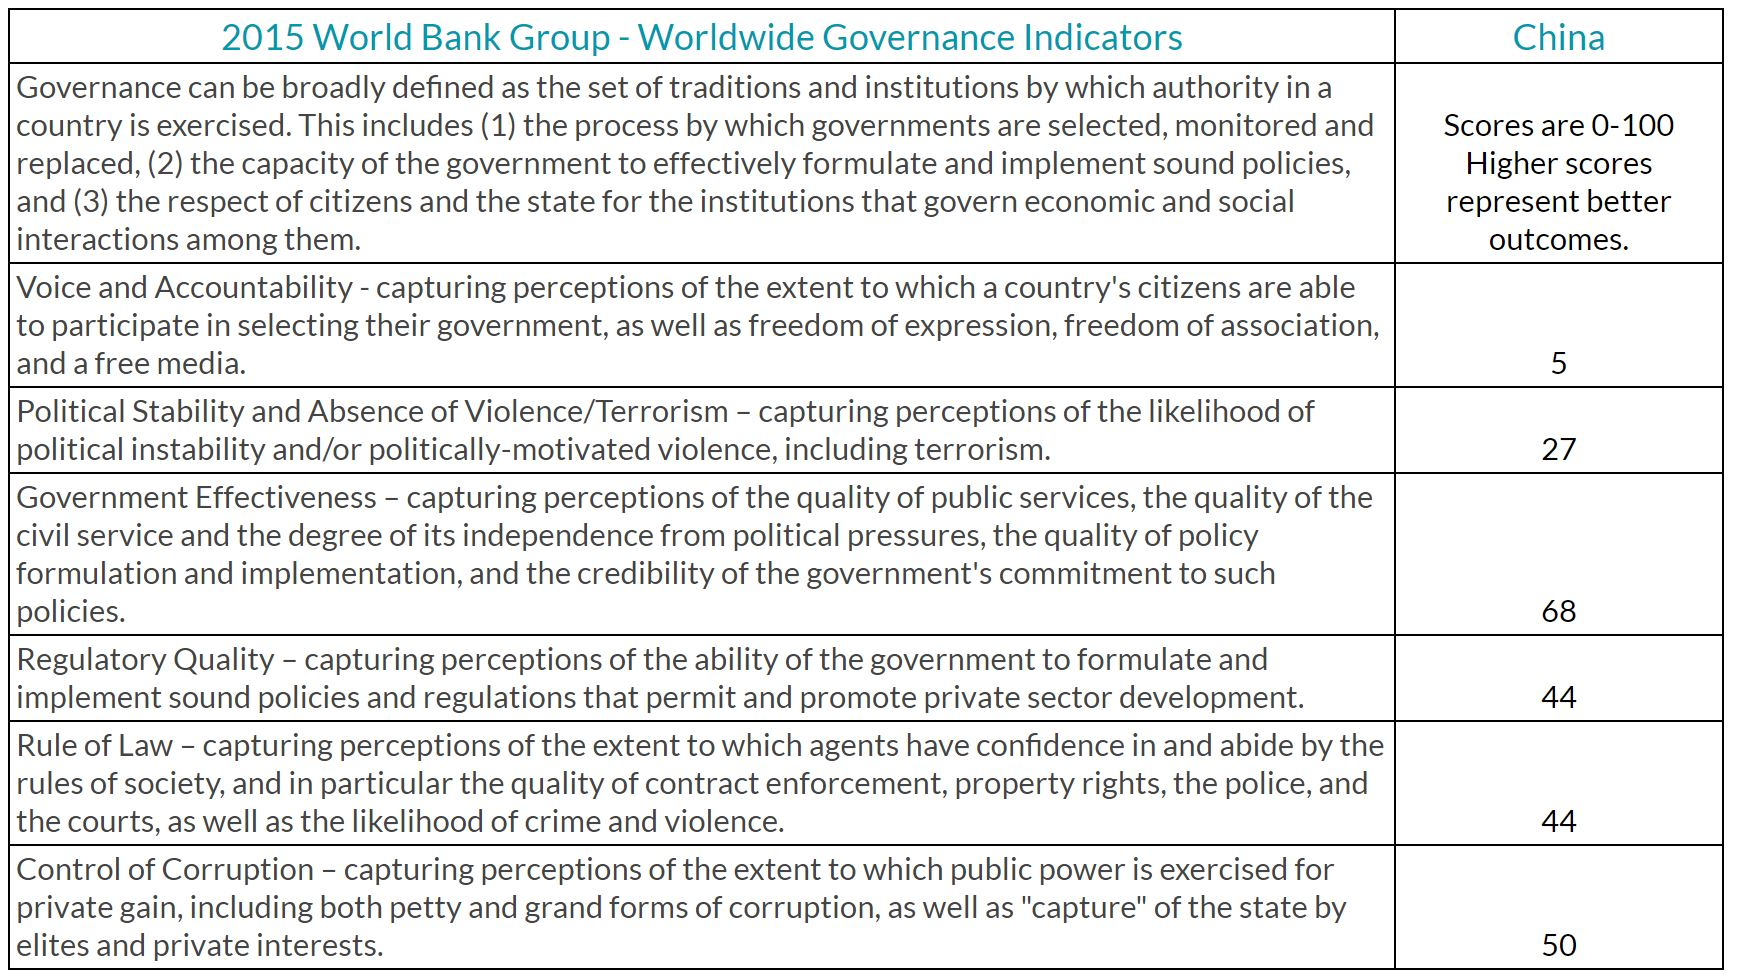 World Bank Group Worldwide Governance Indicators results for China